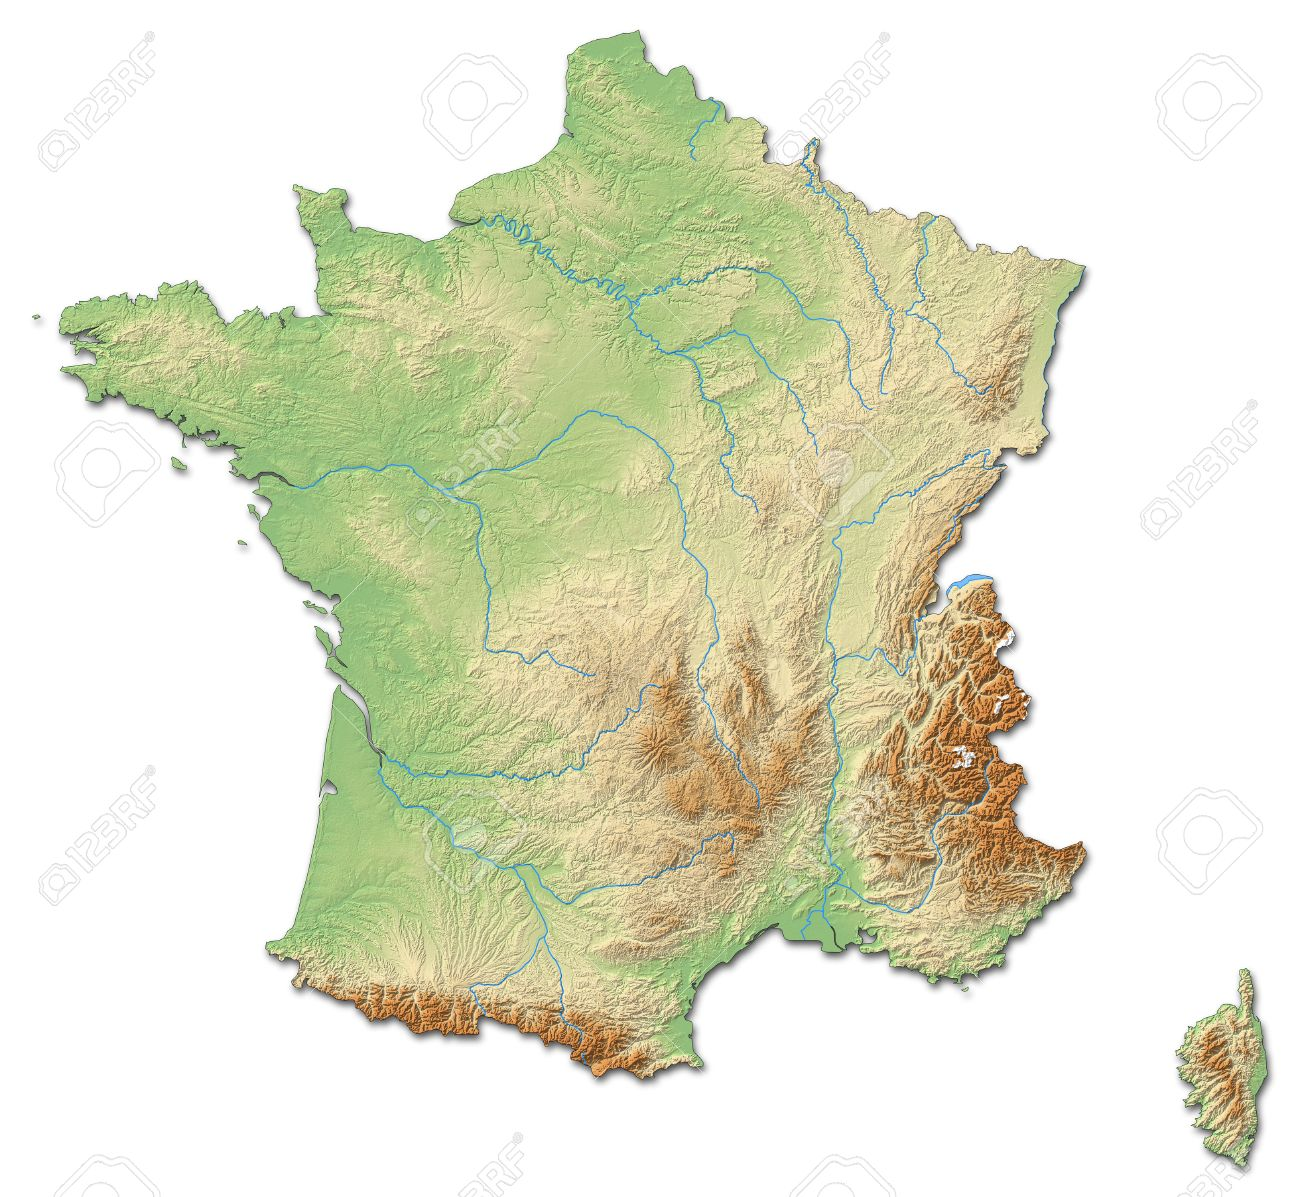 Relief map of France with shaded relief. - 59583099